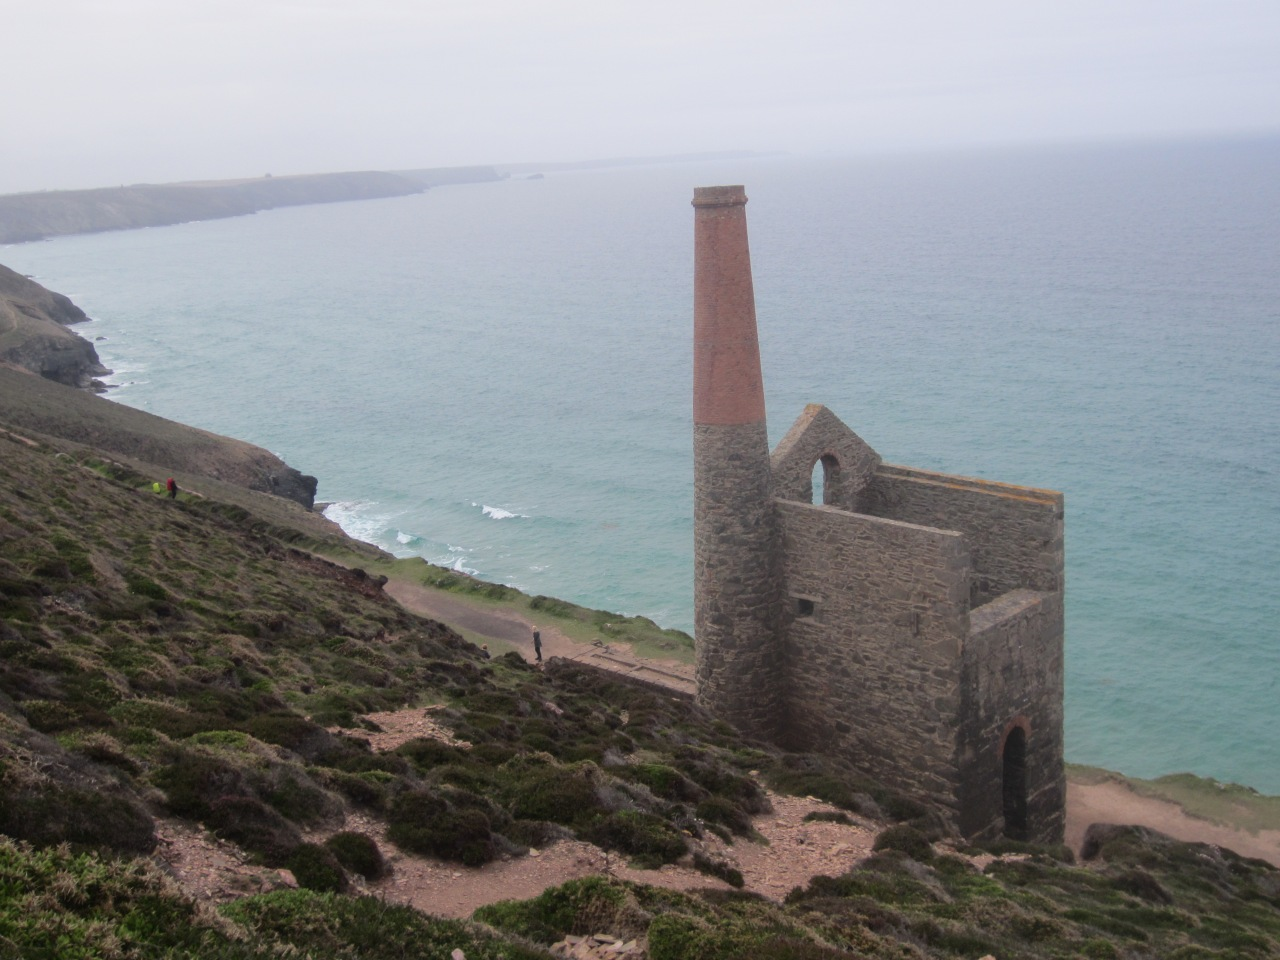 History and beachlife on the Porthtowan to Wheal Coates coastal walk